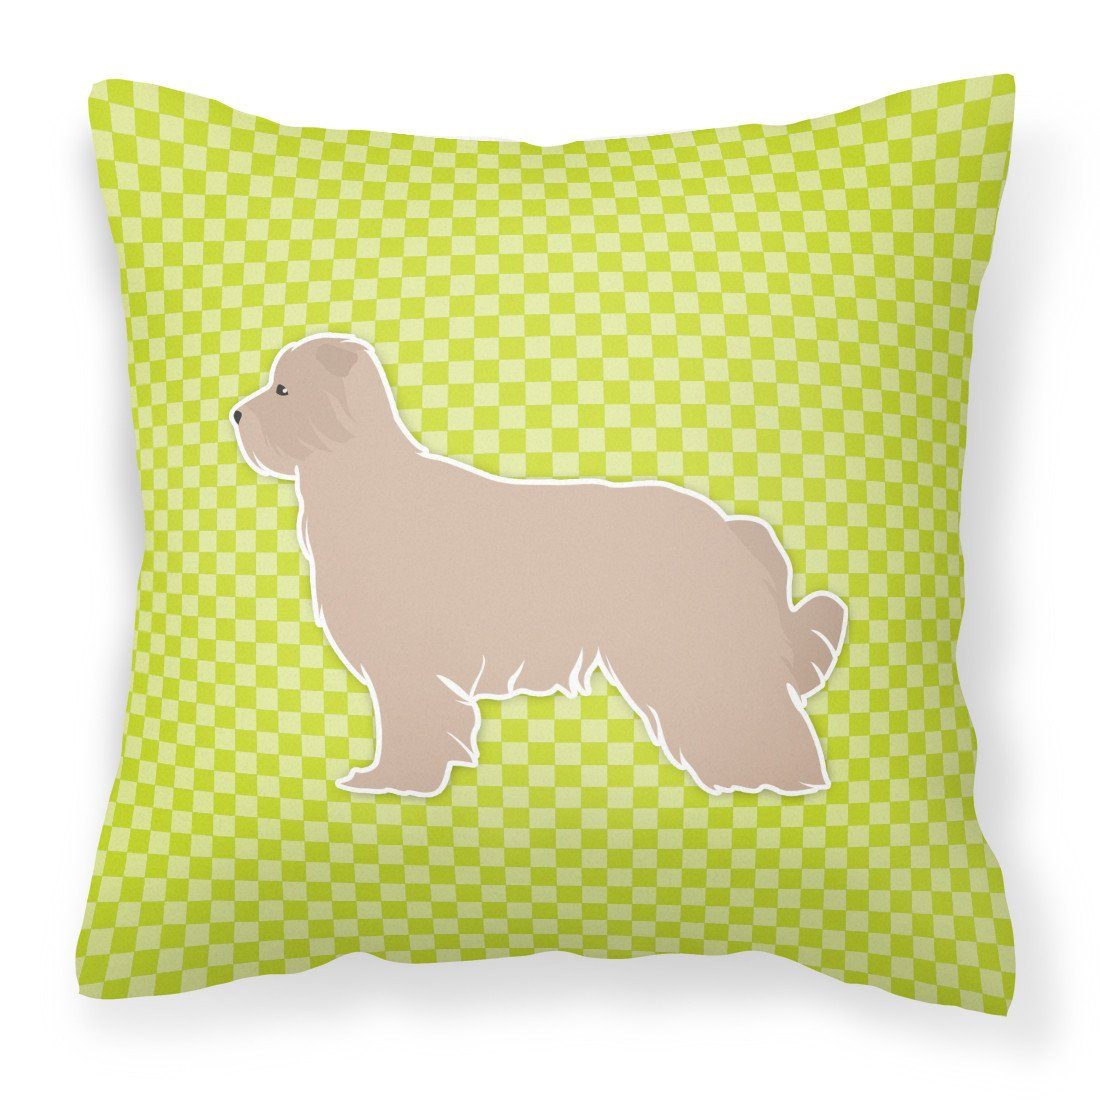 Pyrenean Shepherd Checkerboard Green Fabric Decorative Pillow BB3818PW1818 by Caroline's Treasures